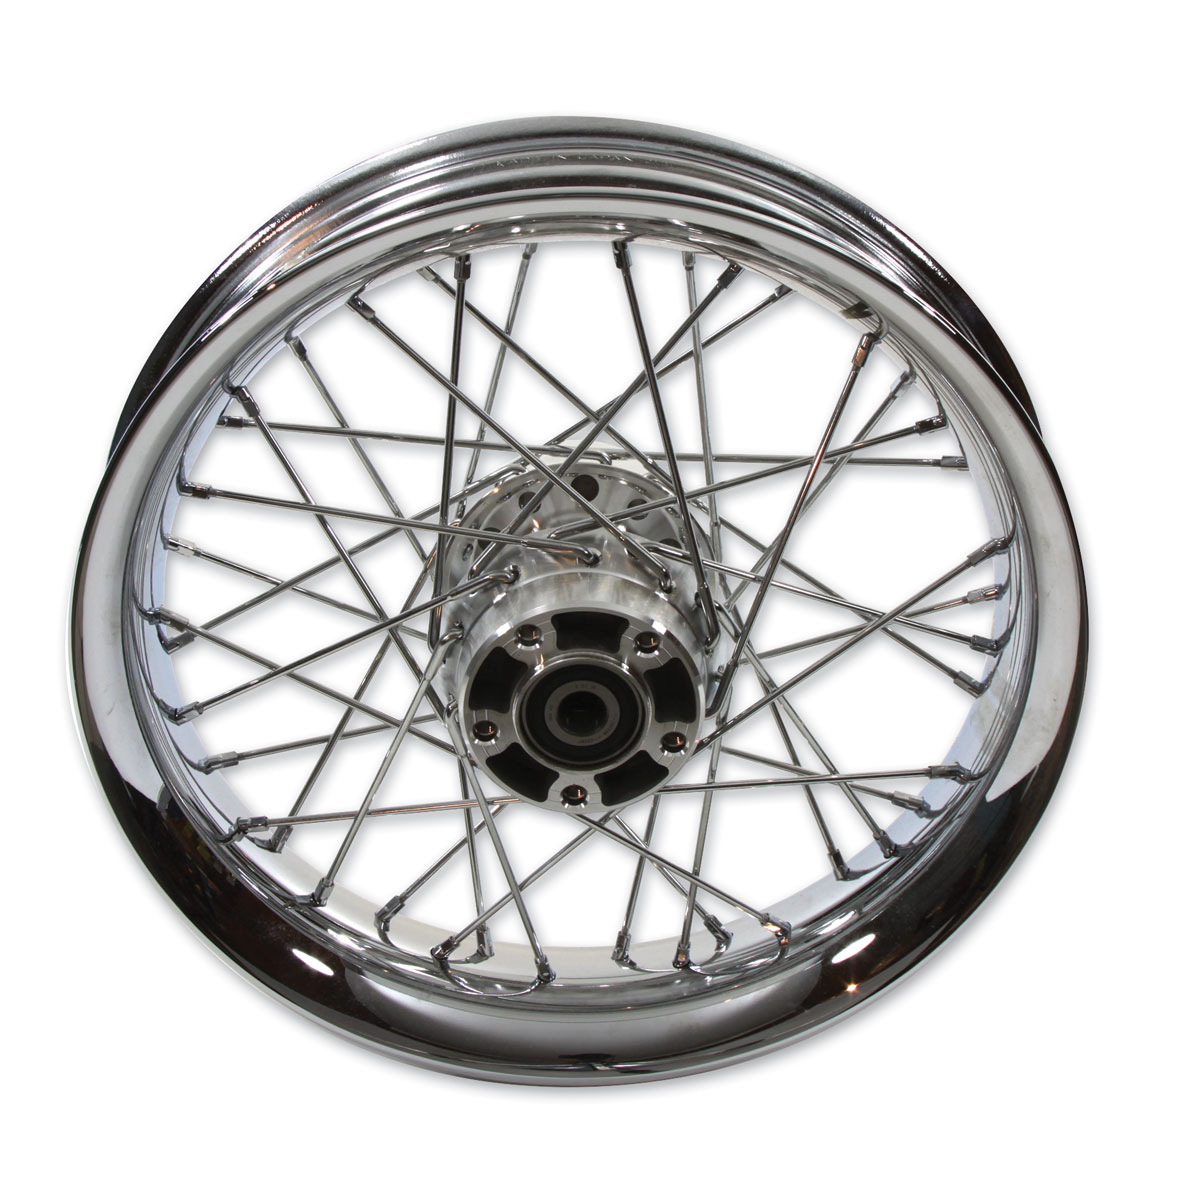 V-Twin Manufacturing 40 Spoke Chrome 16″ Rear Wheel